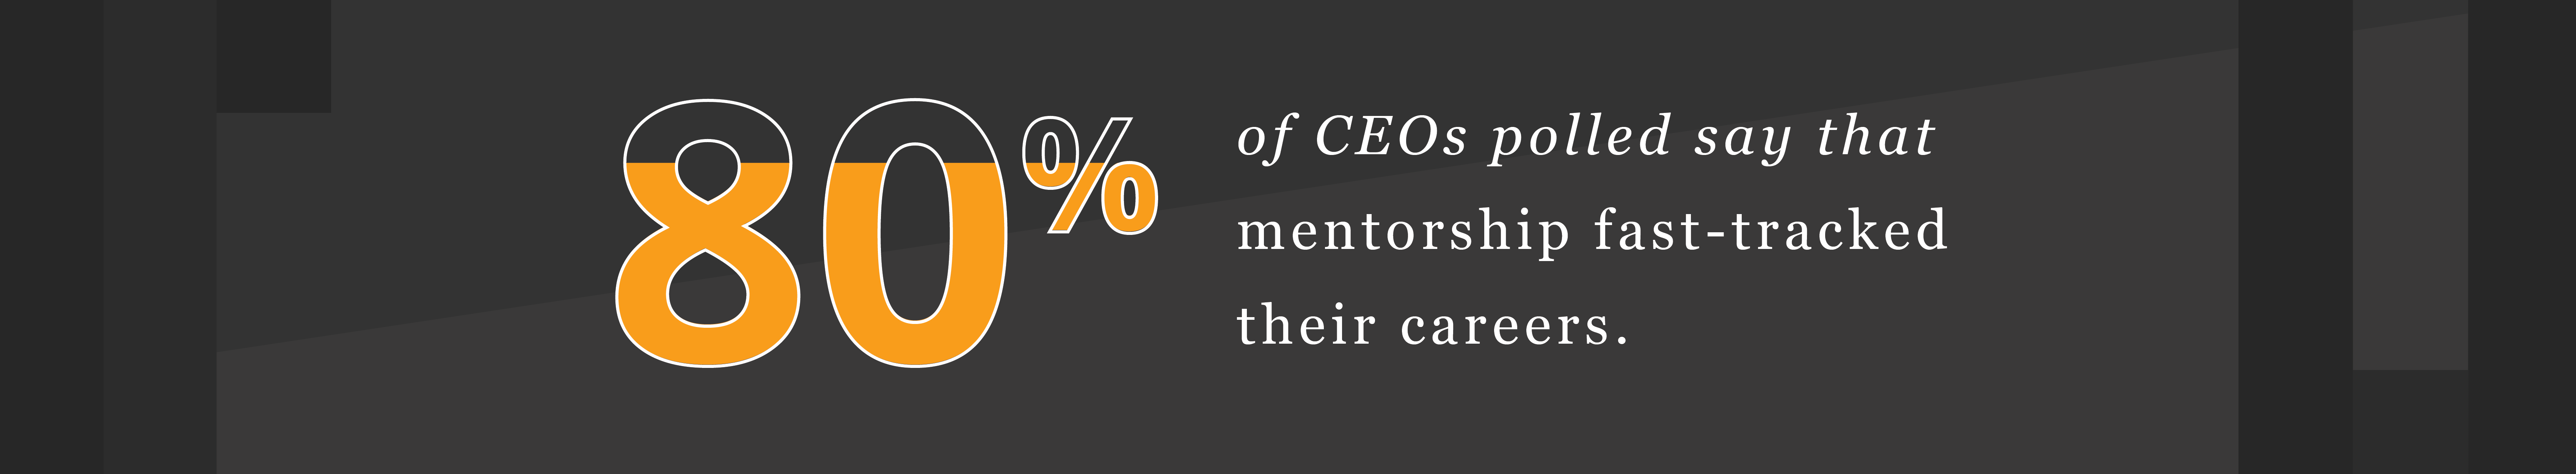 corporate mentoring stats